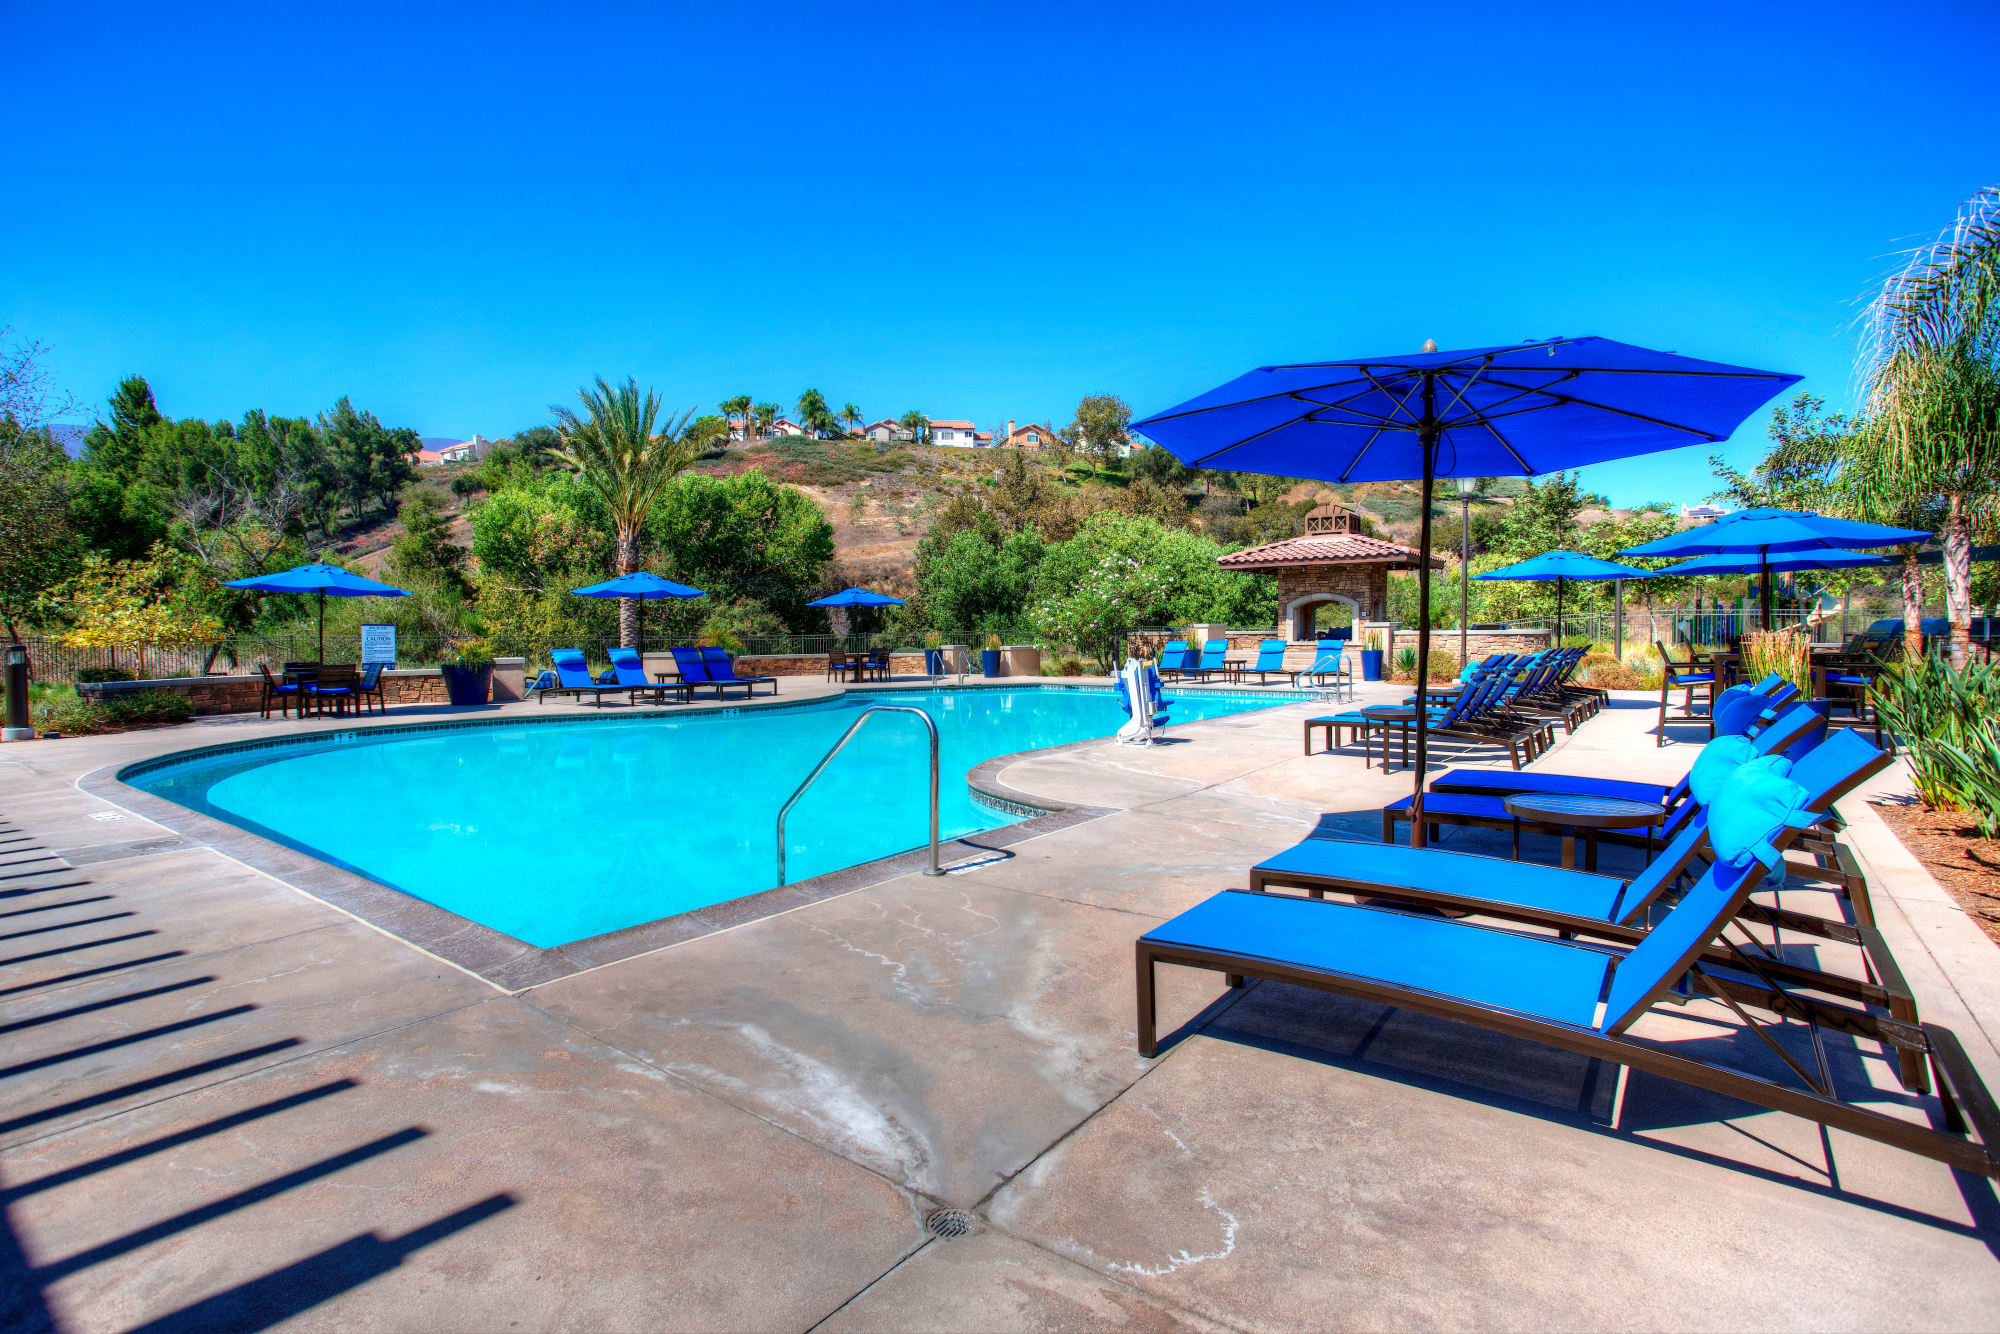 resort-style Pool Deck with lounge chairs at Palisades Sierra Del Oro